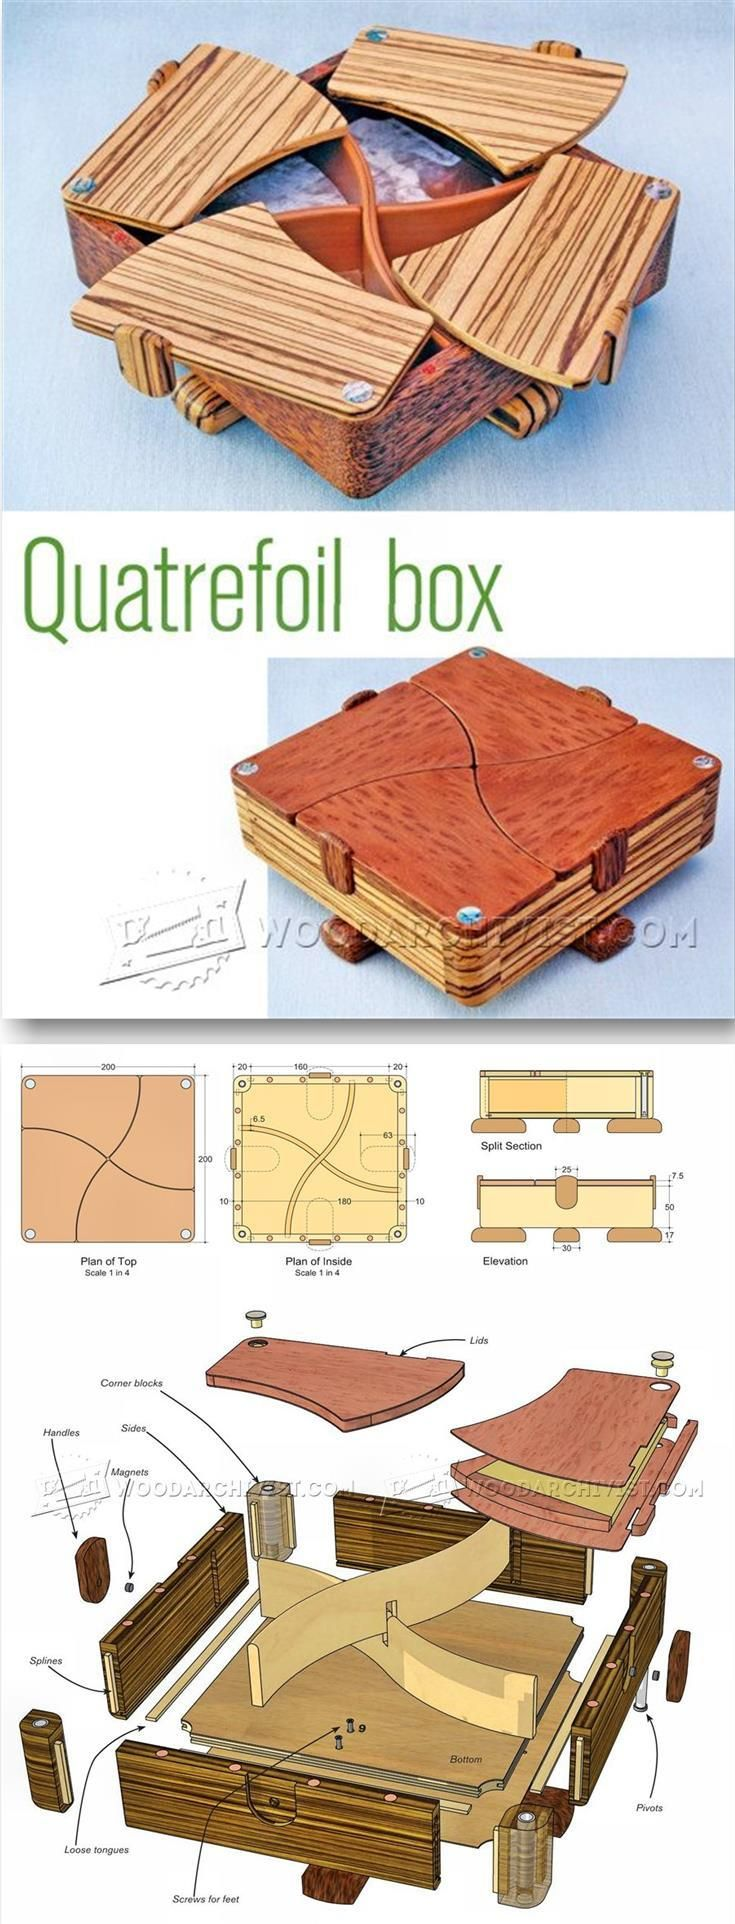 Complex Box Plans - Woodworking Plans and Projects | WoodArchivist.com